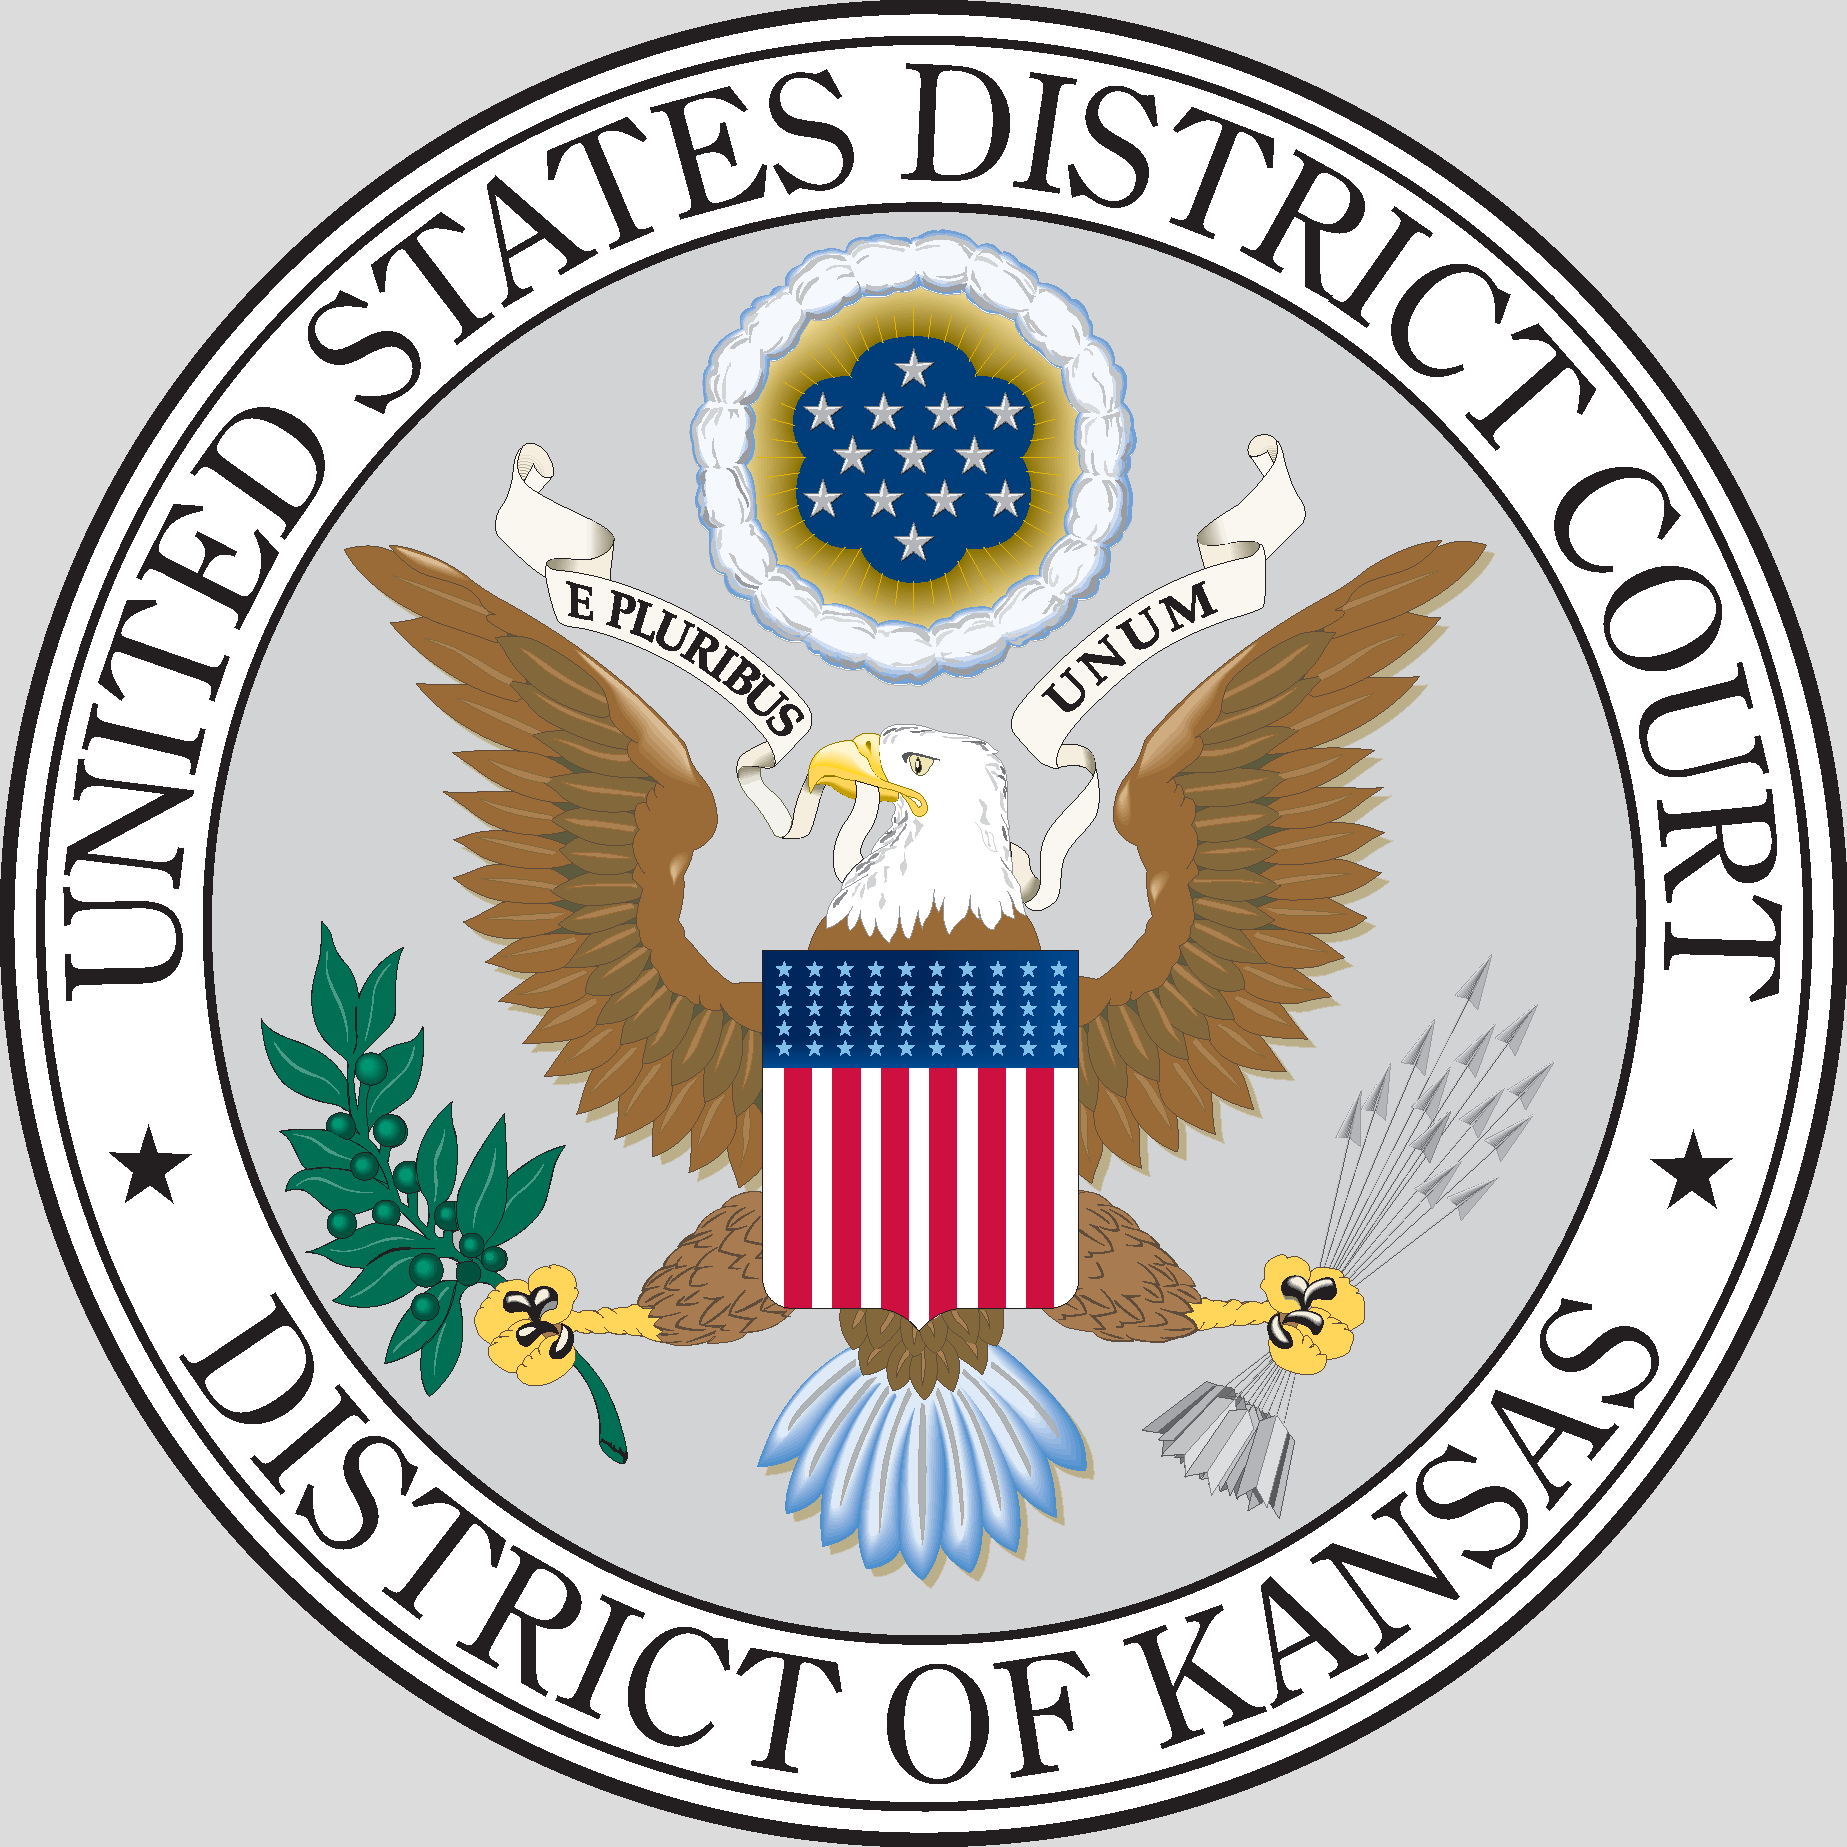 U.S. District Court - Kansas